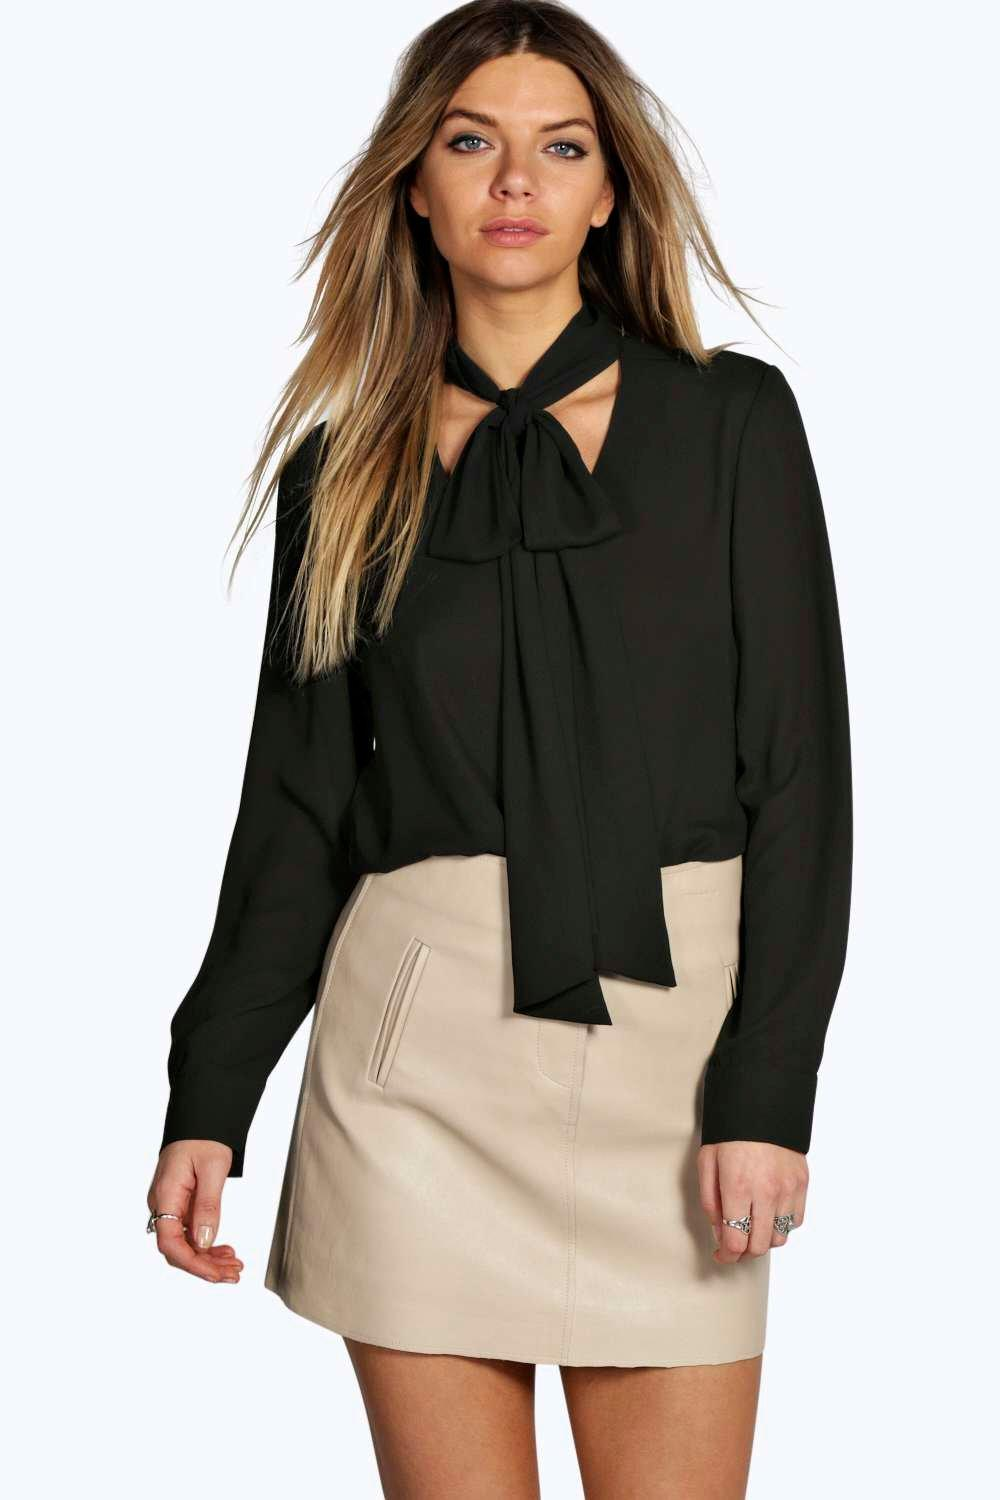 Amazing Made From Silk Rachel Zoe Ricky Neck Tie Blouse Will Inject A Playful